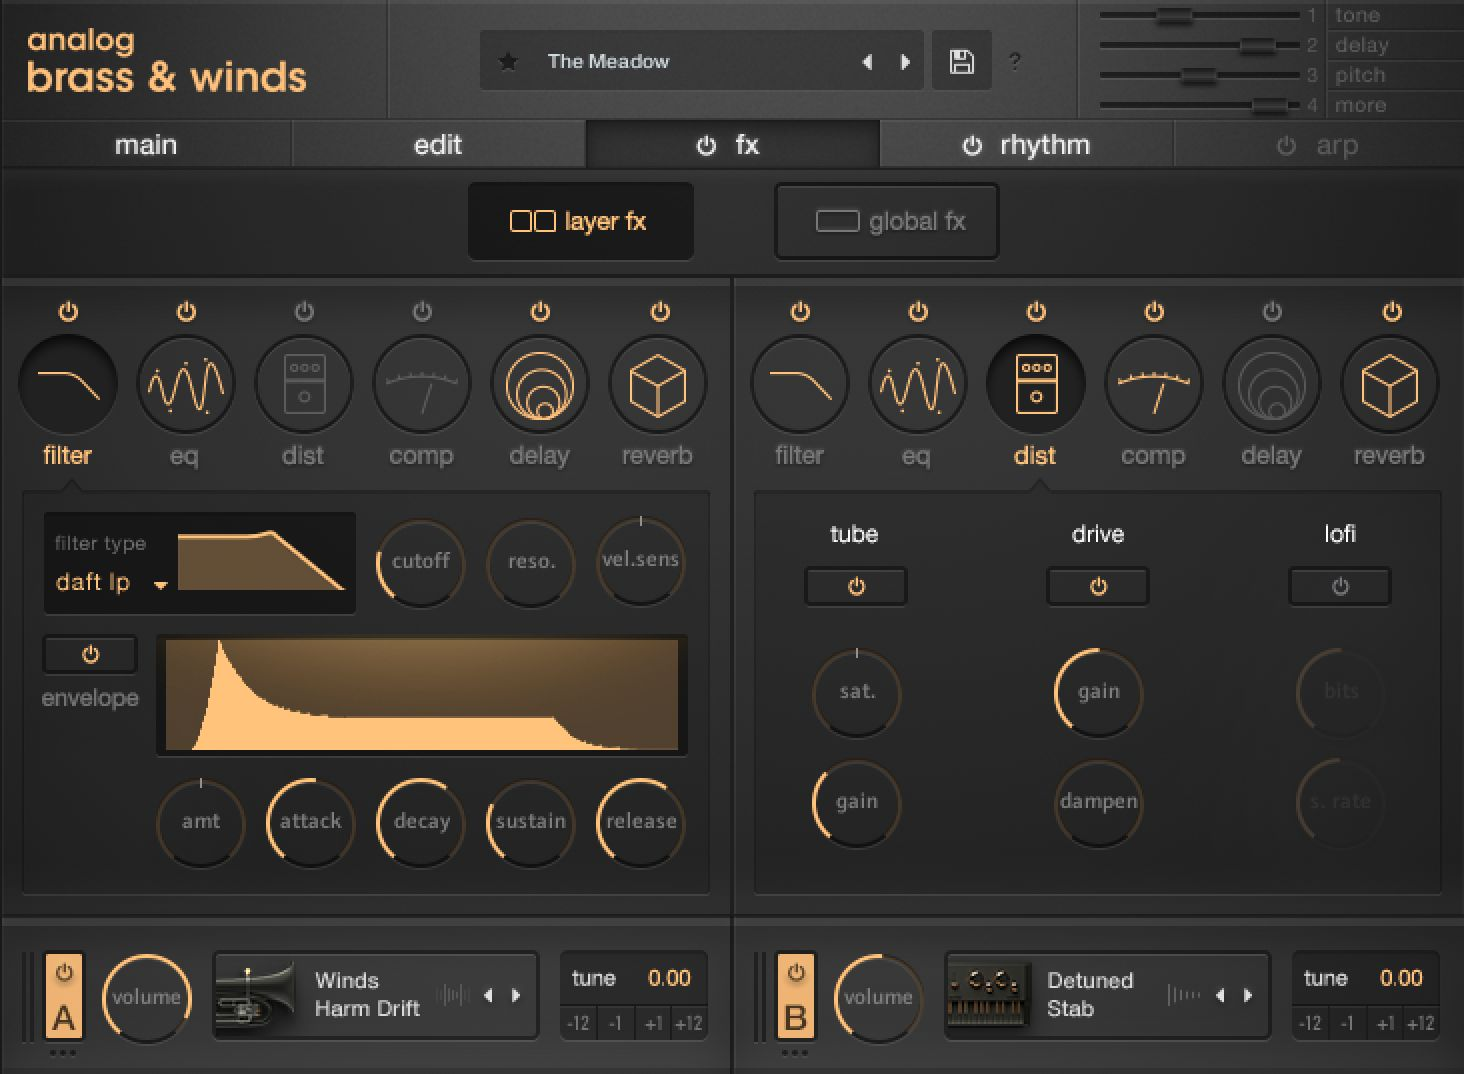 Output Analog Brass & Winds GUI